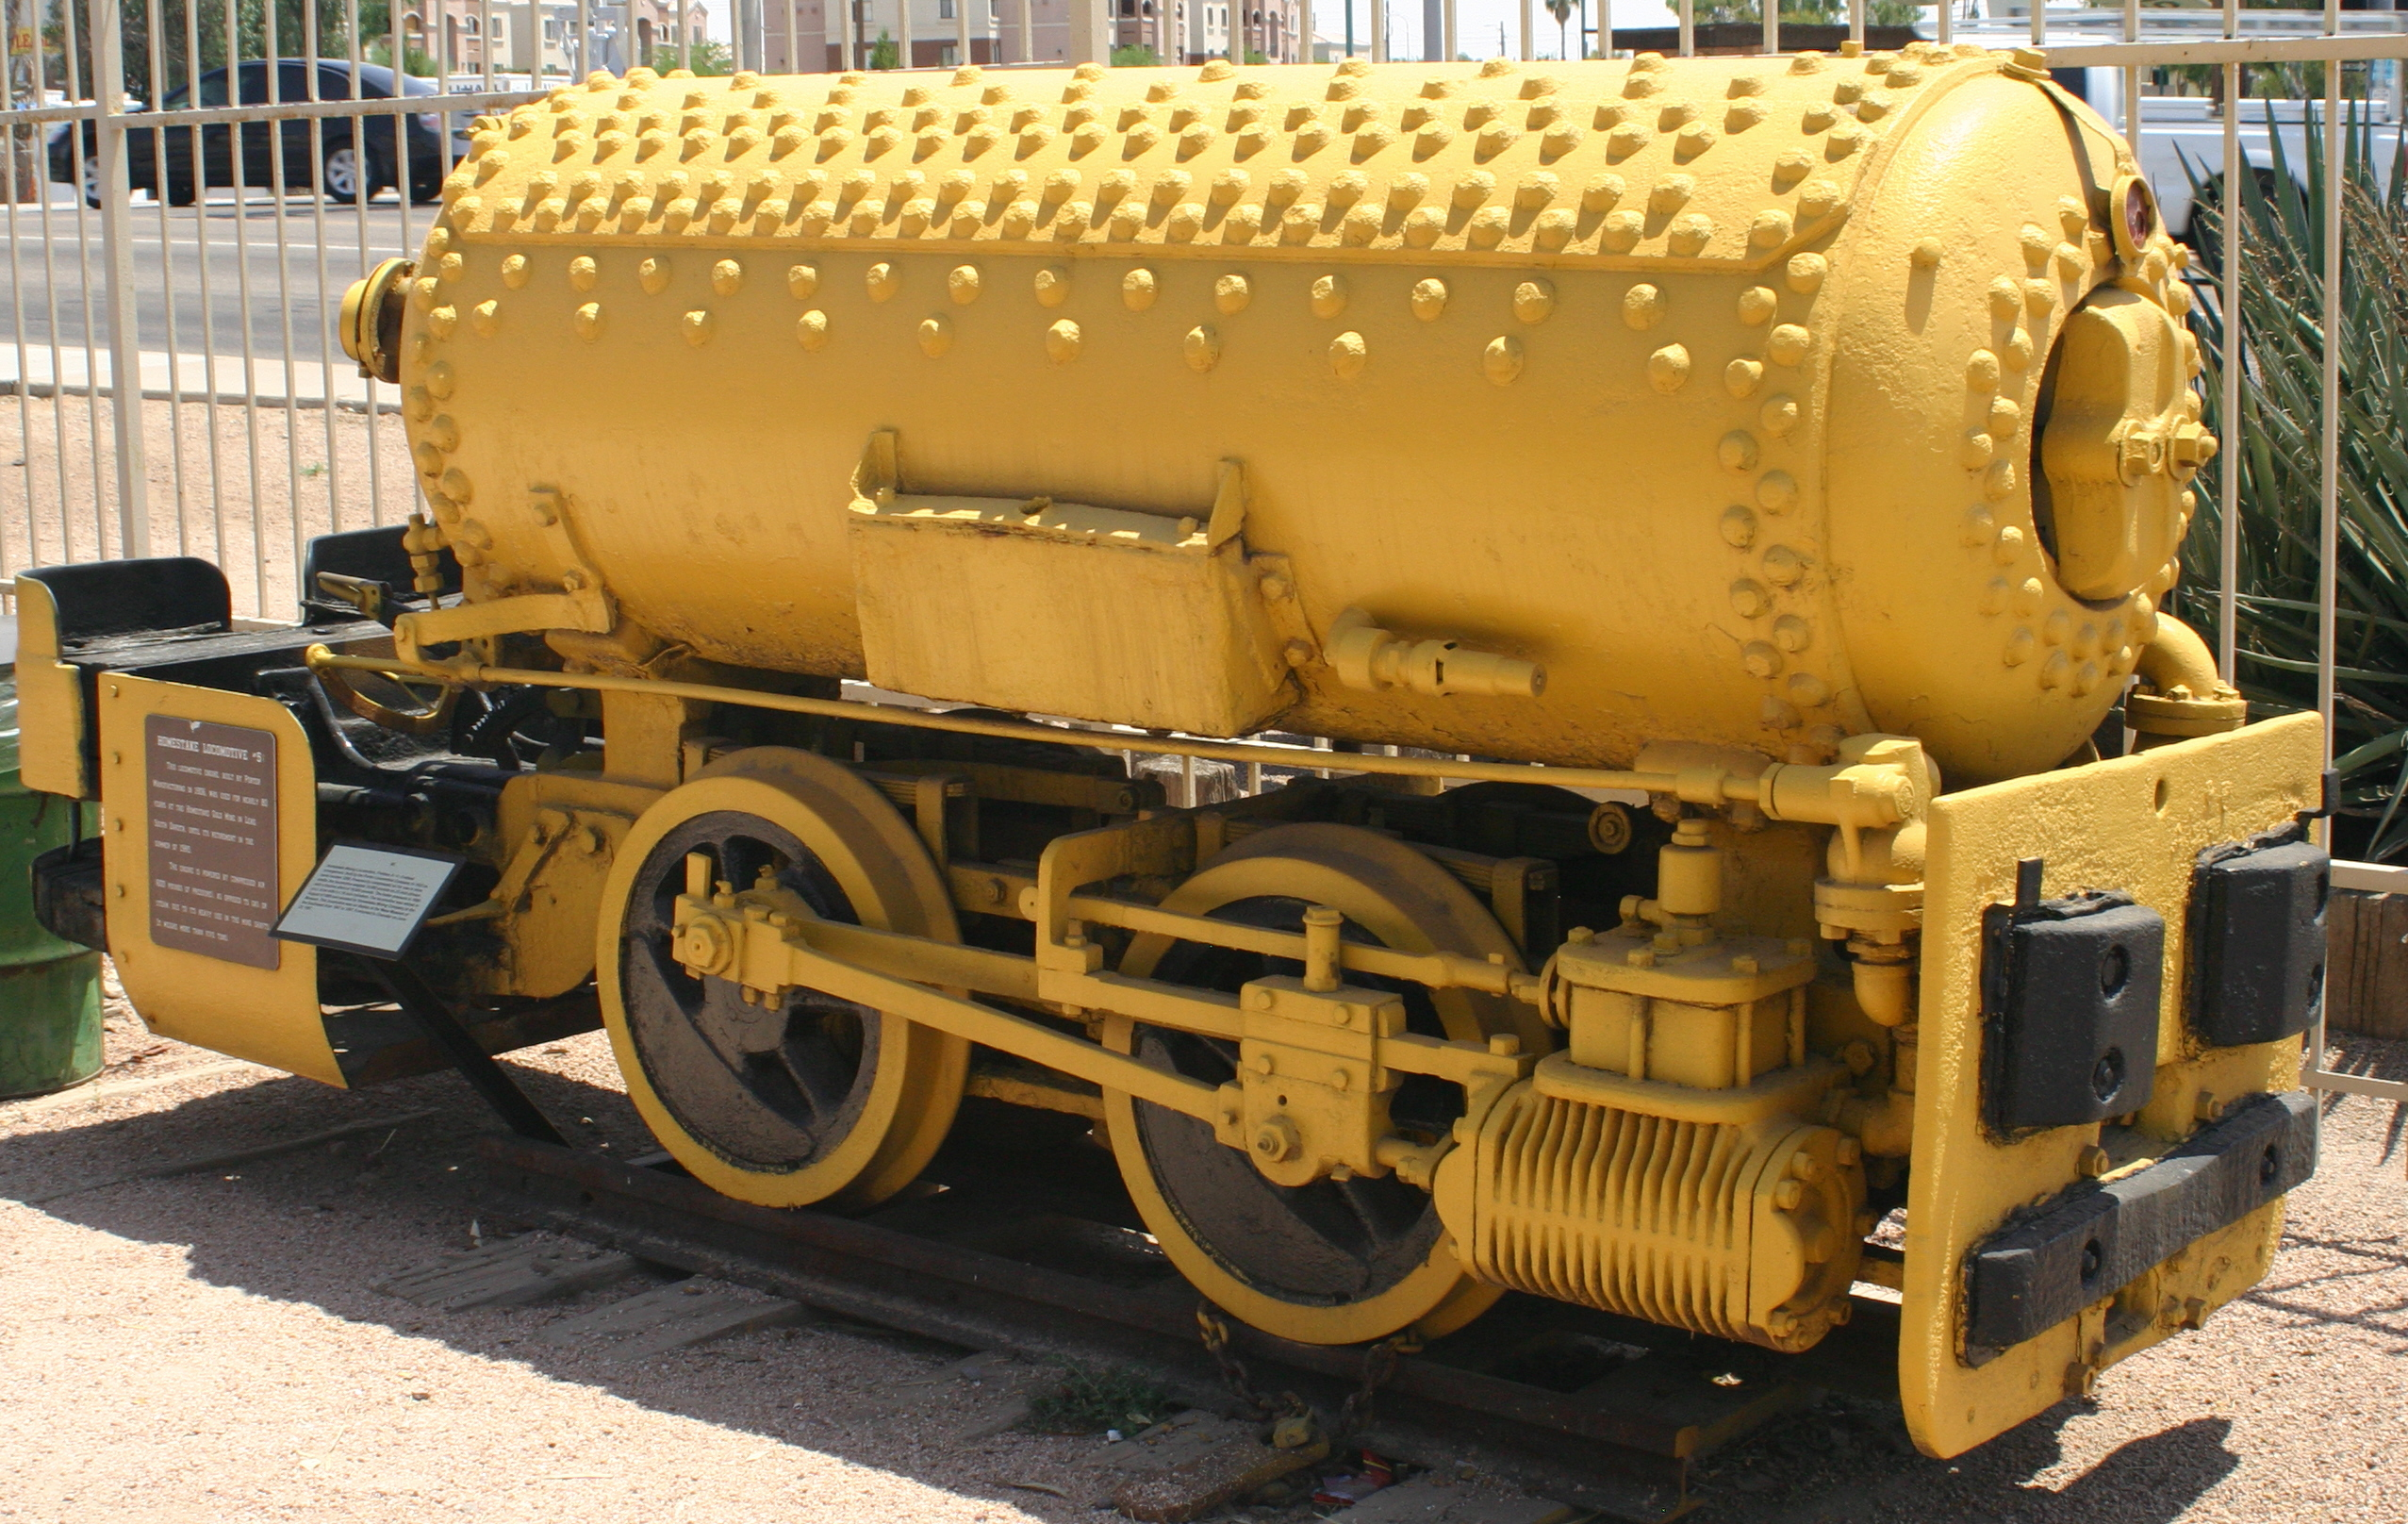 Locomotive à air comprimé Porter (Photo: Wikimedia)